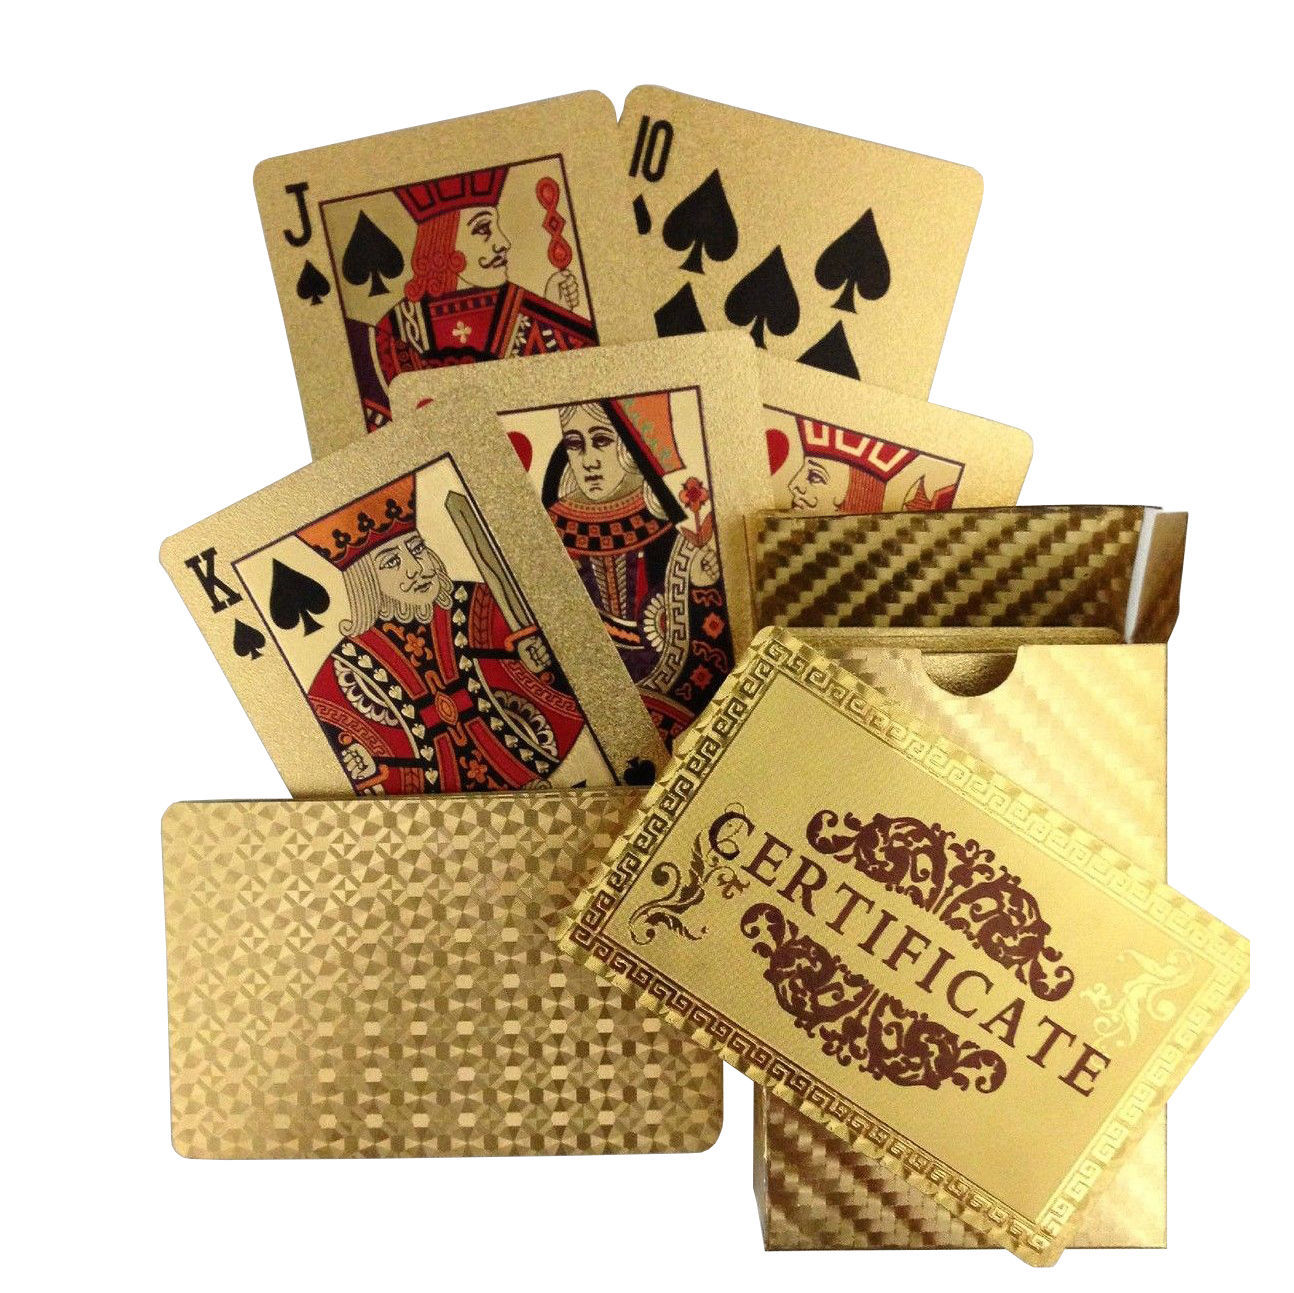 Primary image for 24 Carat 99.9% Gold Plated Playing Cards